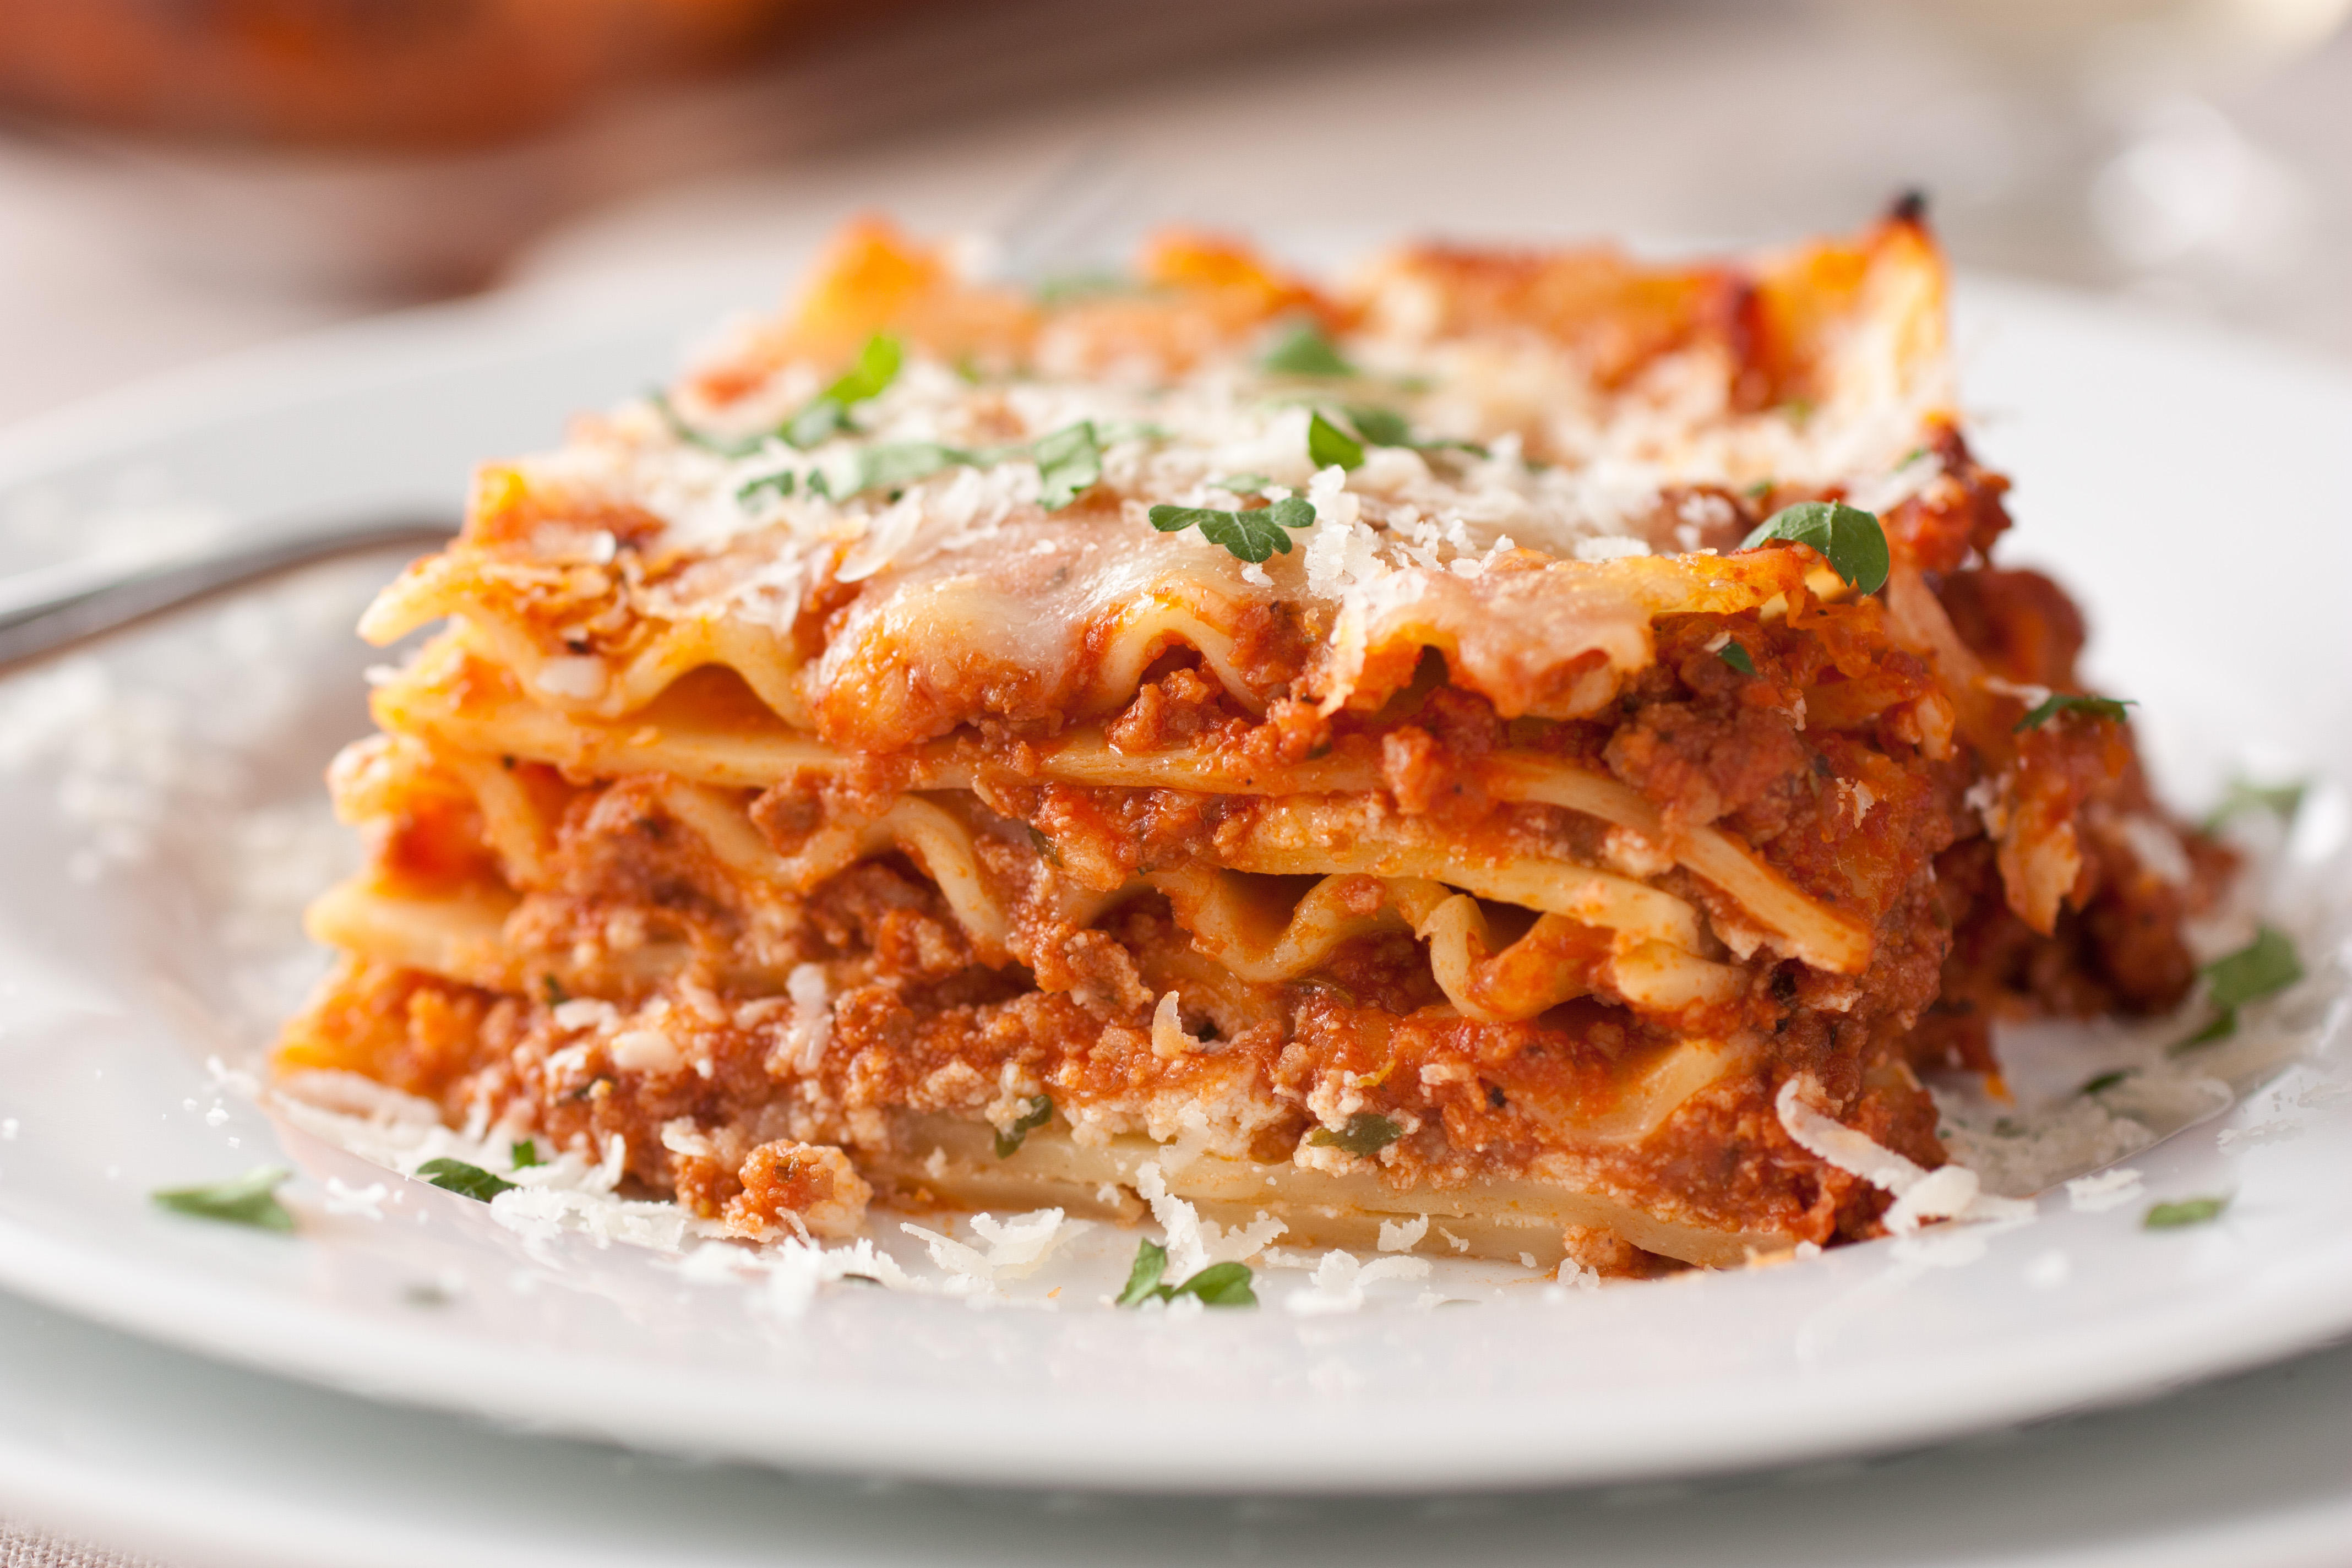 Centrolina will celebrate National Lasagna Day with four varieties of lasagna in its market on Wednesday. (Photo: Cooking Classy)